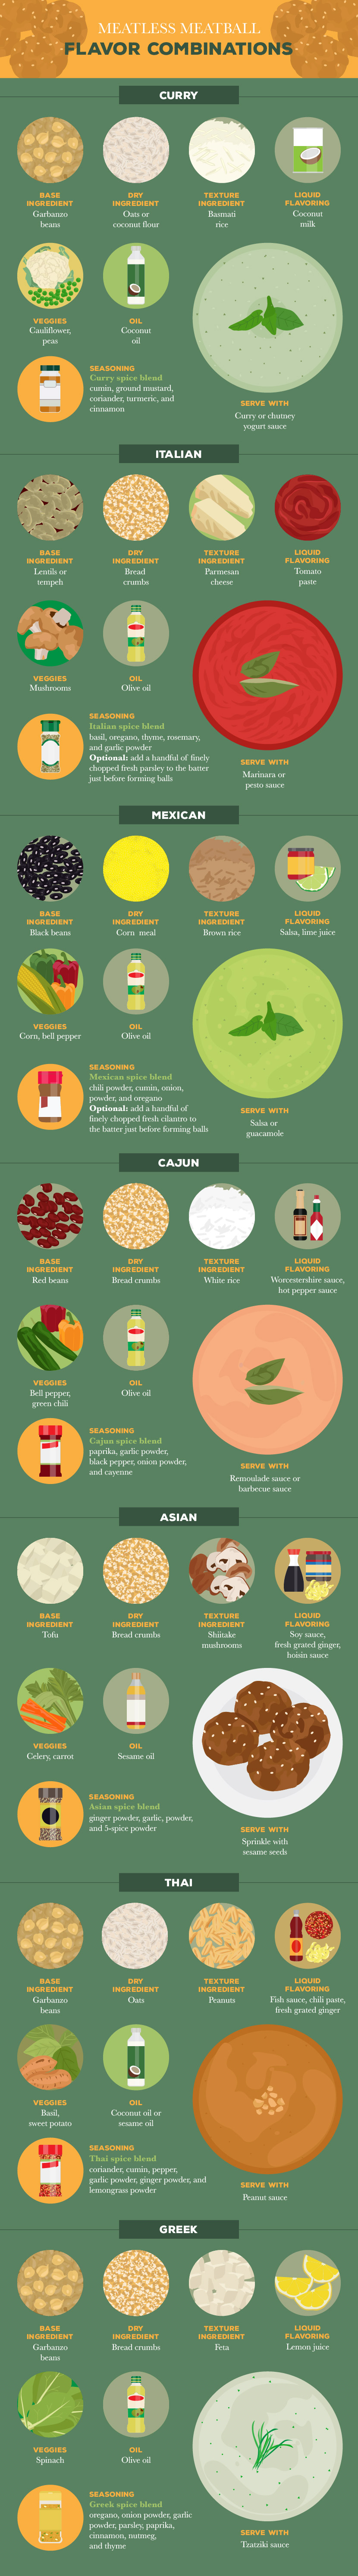 Flavor Combinations For Meatless Meatballs